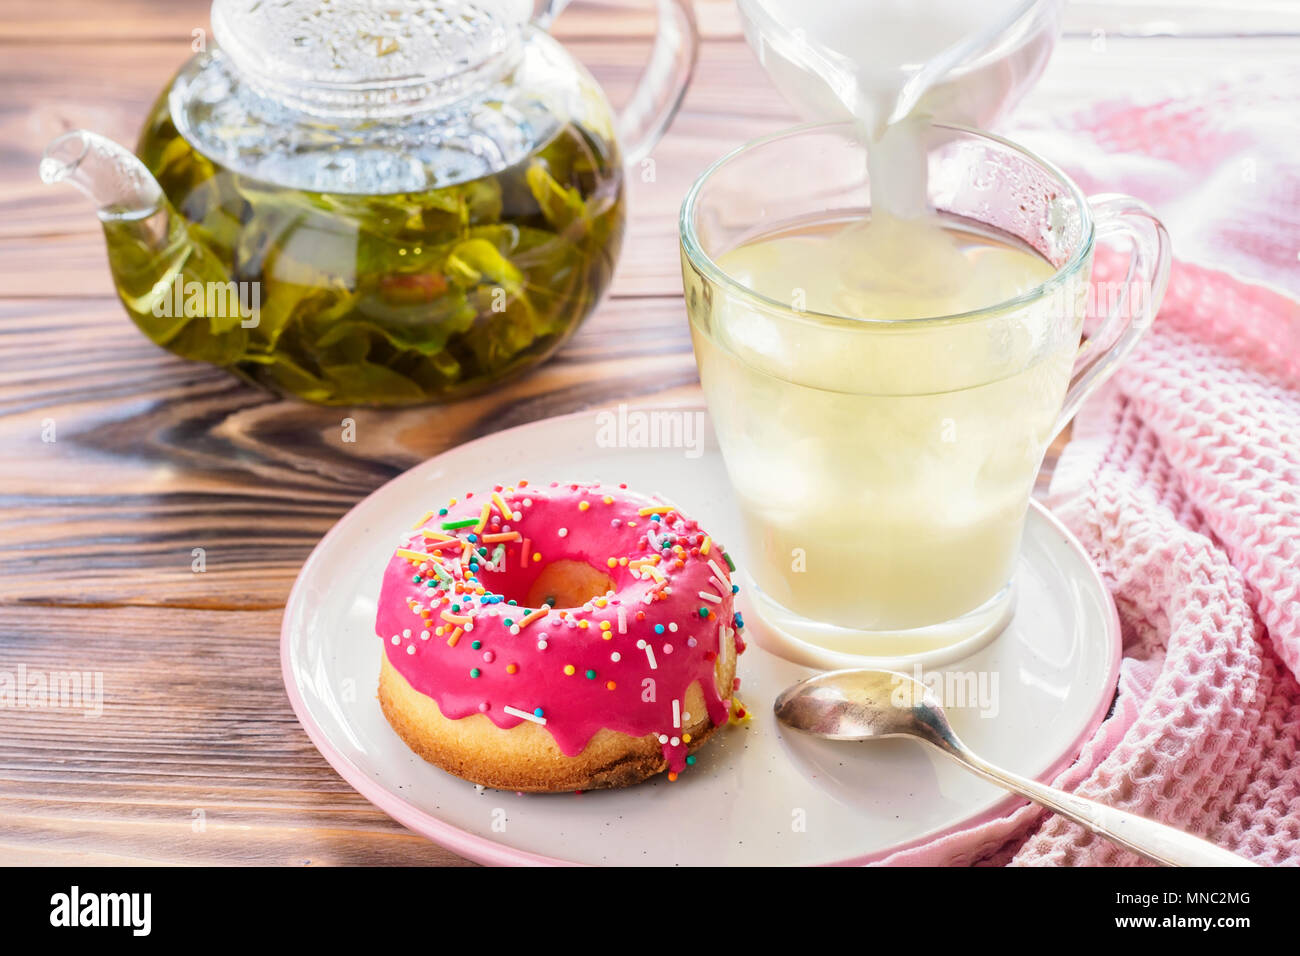 Cup of hot green tea beverages with donut glazed - Stock Image